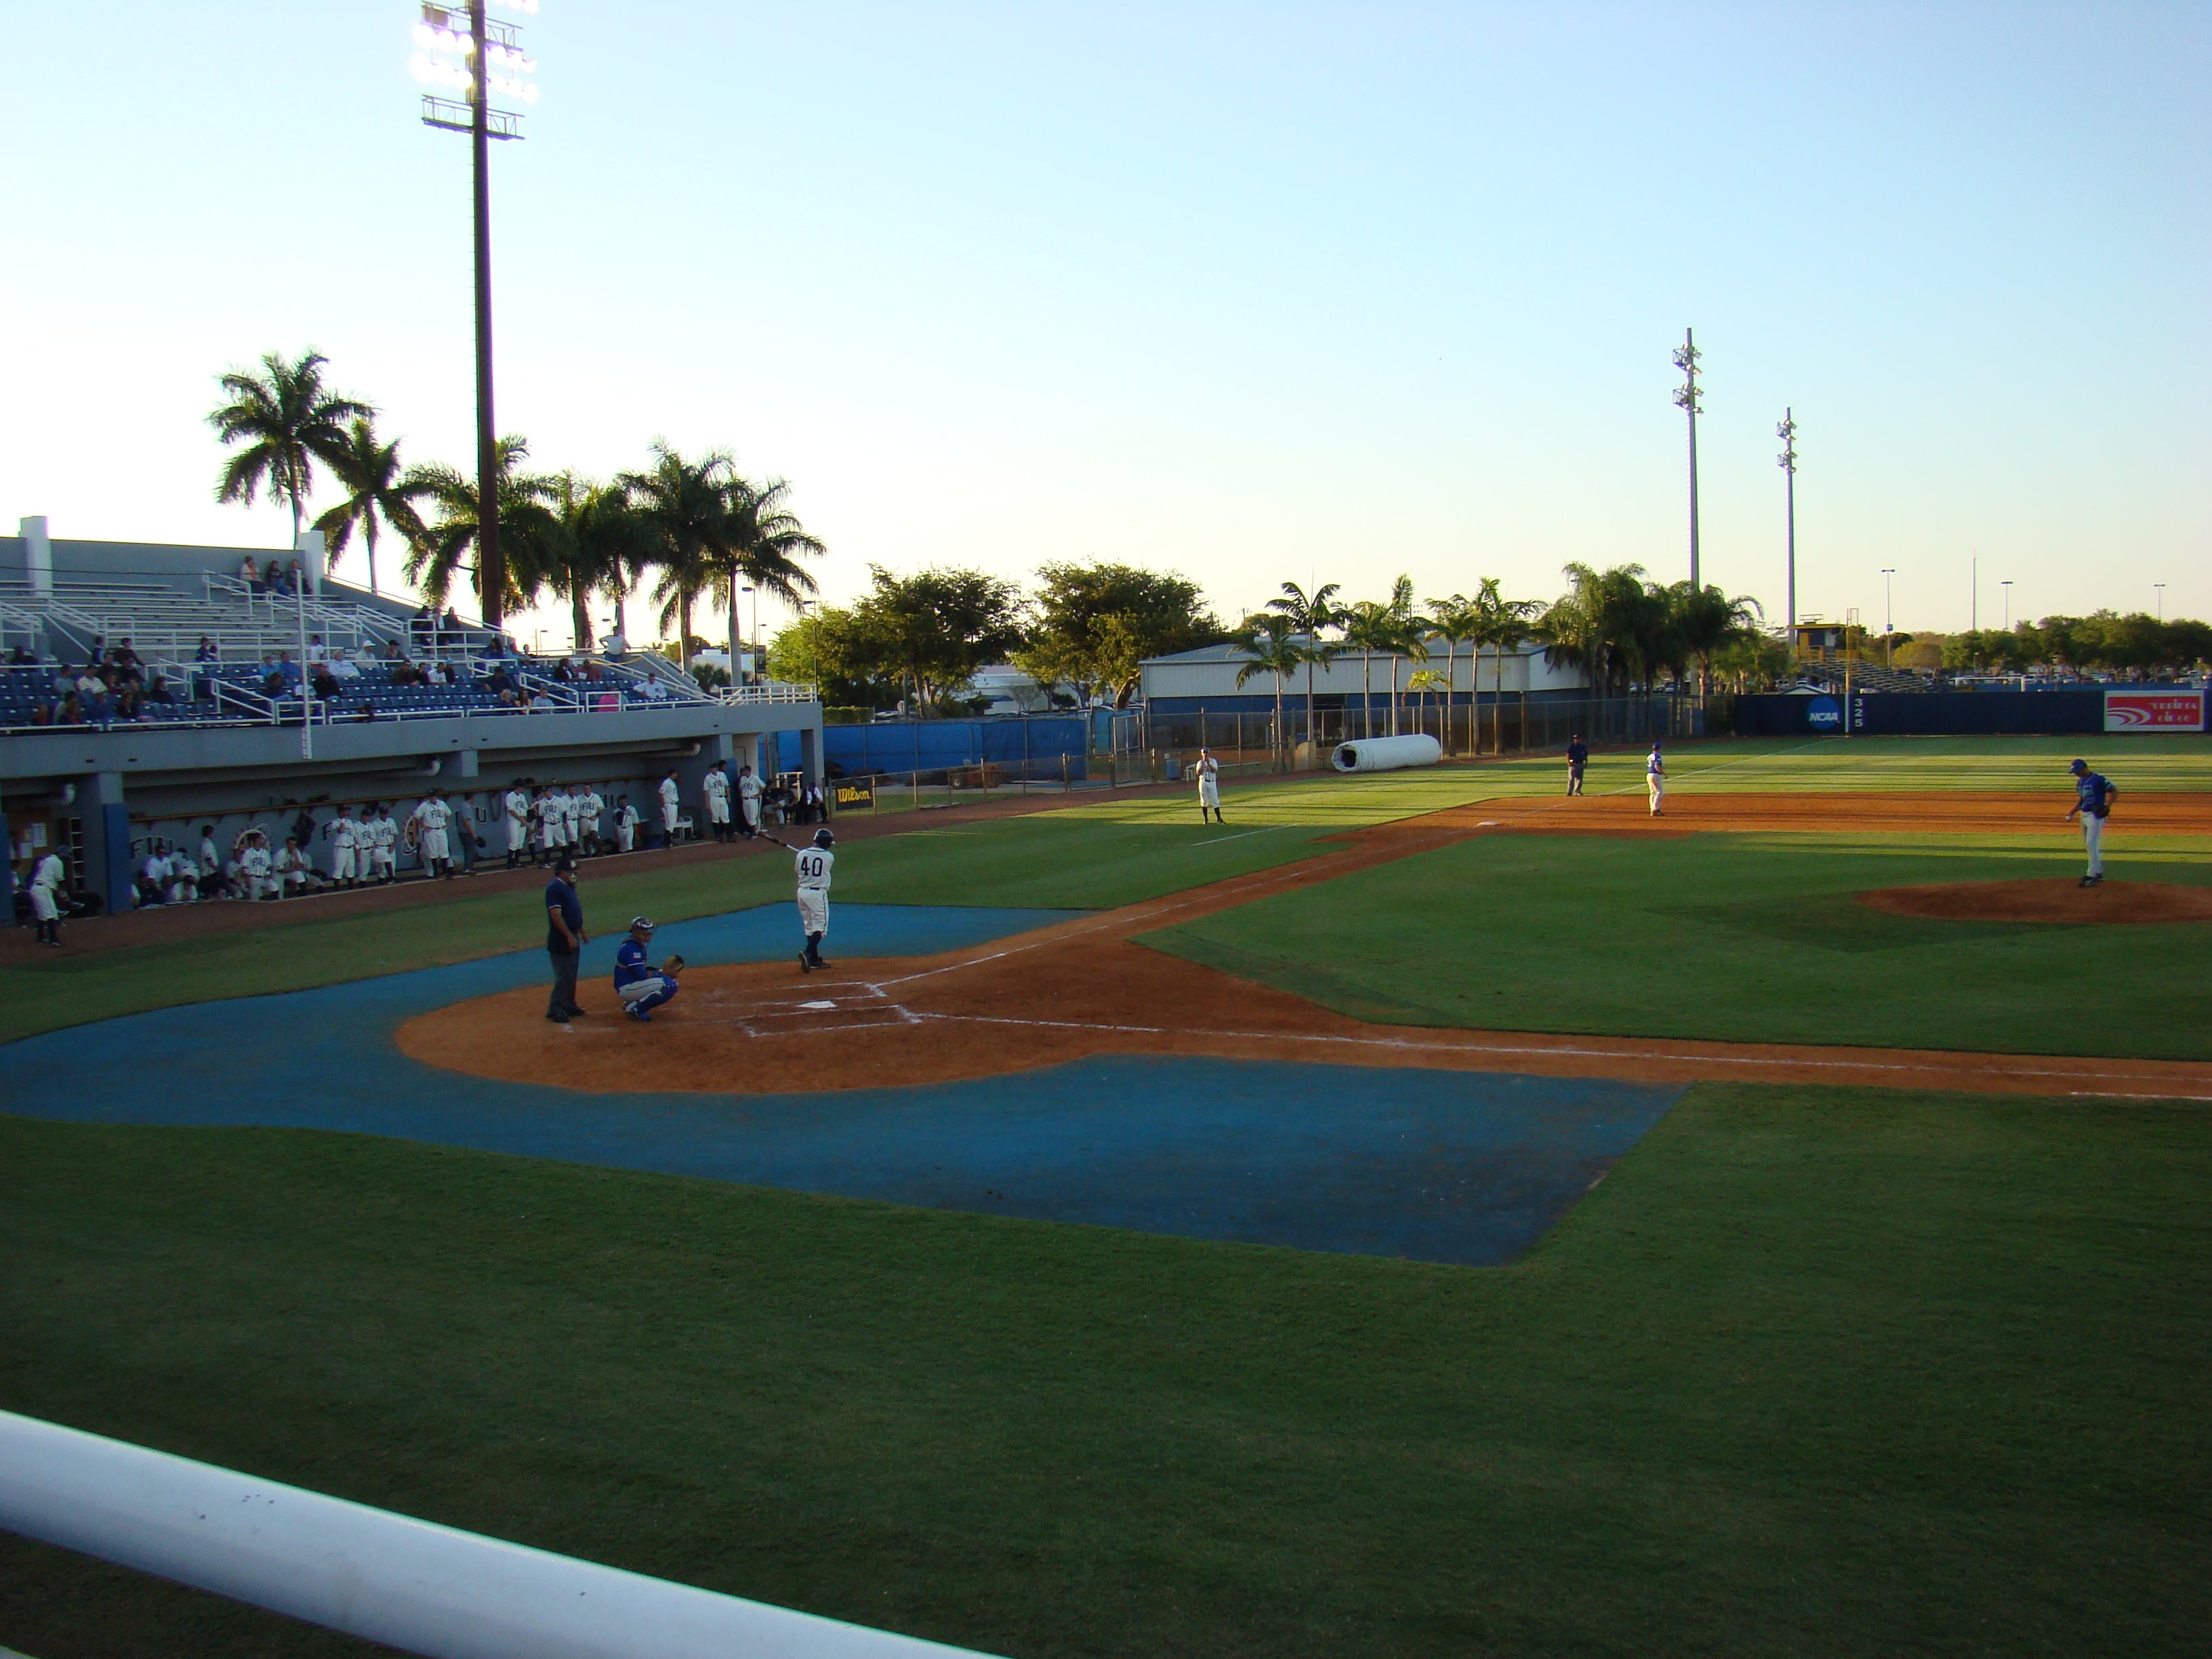 FIU Baseball Stadium